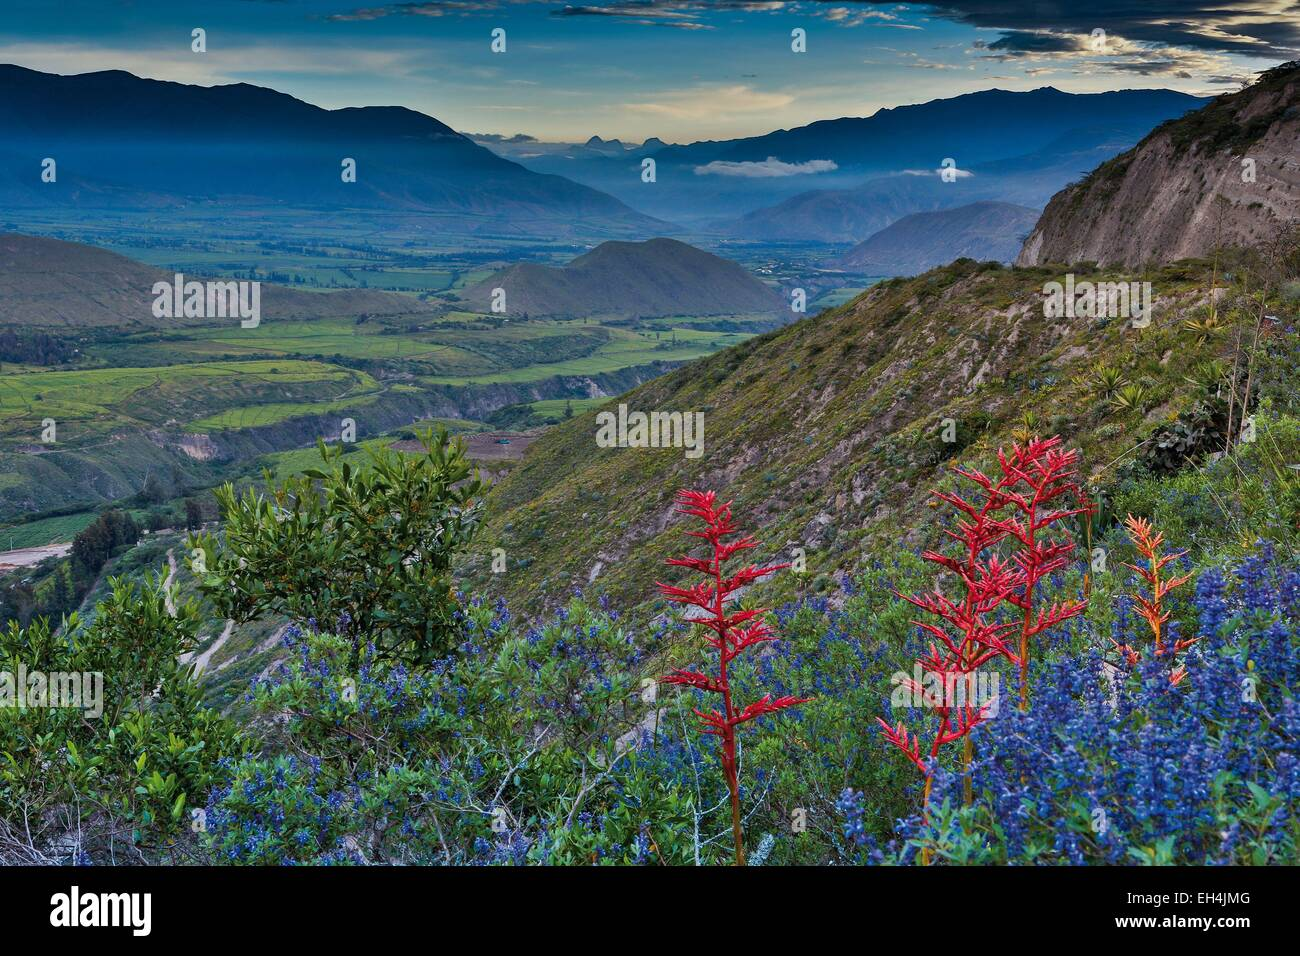 Ecuador, Ibarra, mountain landscape of hills and valley with wild flowers in the foreground under a stormy sky - Stock Image